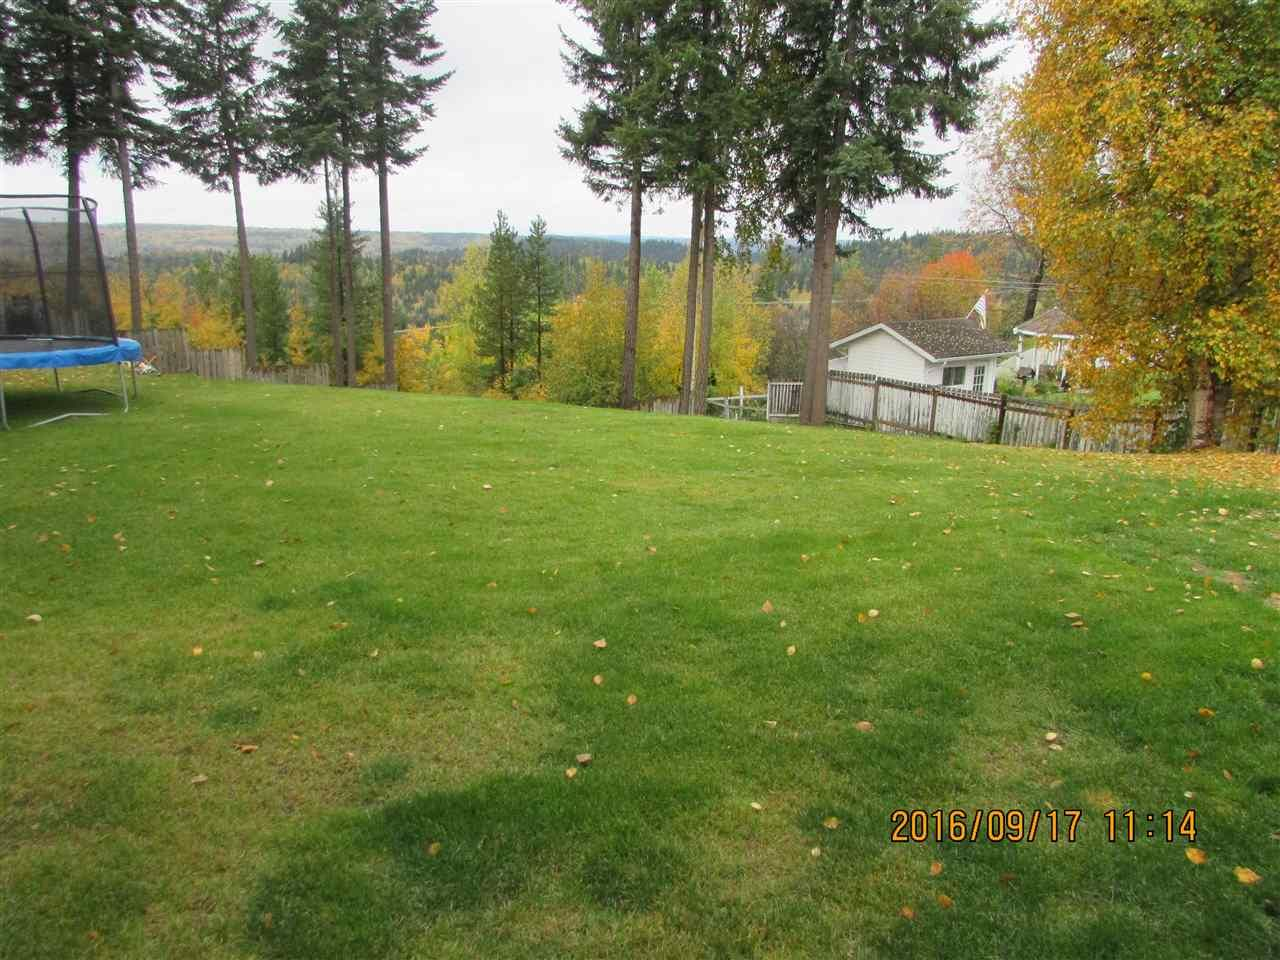 Photo 4: Photos: 2935 RIDGEVIEW Drive in Prince George: Hart Highlands House for sale (PG City North (Zone 73))  : MLS®# R2108584